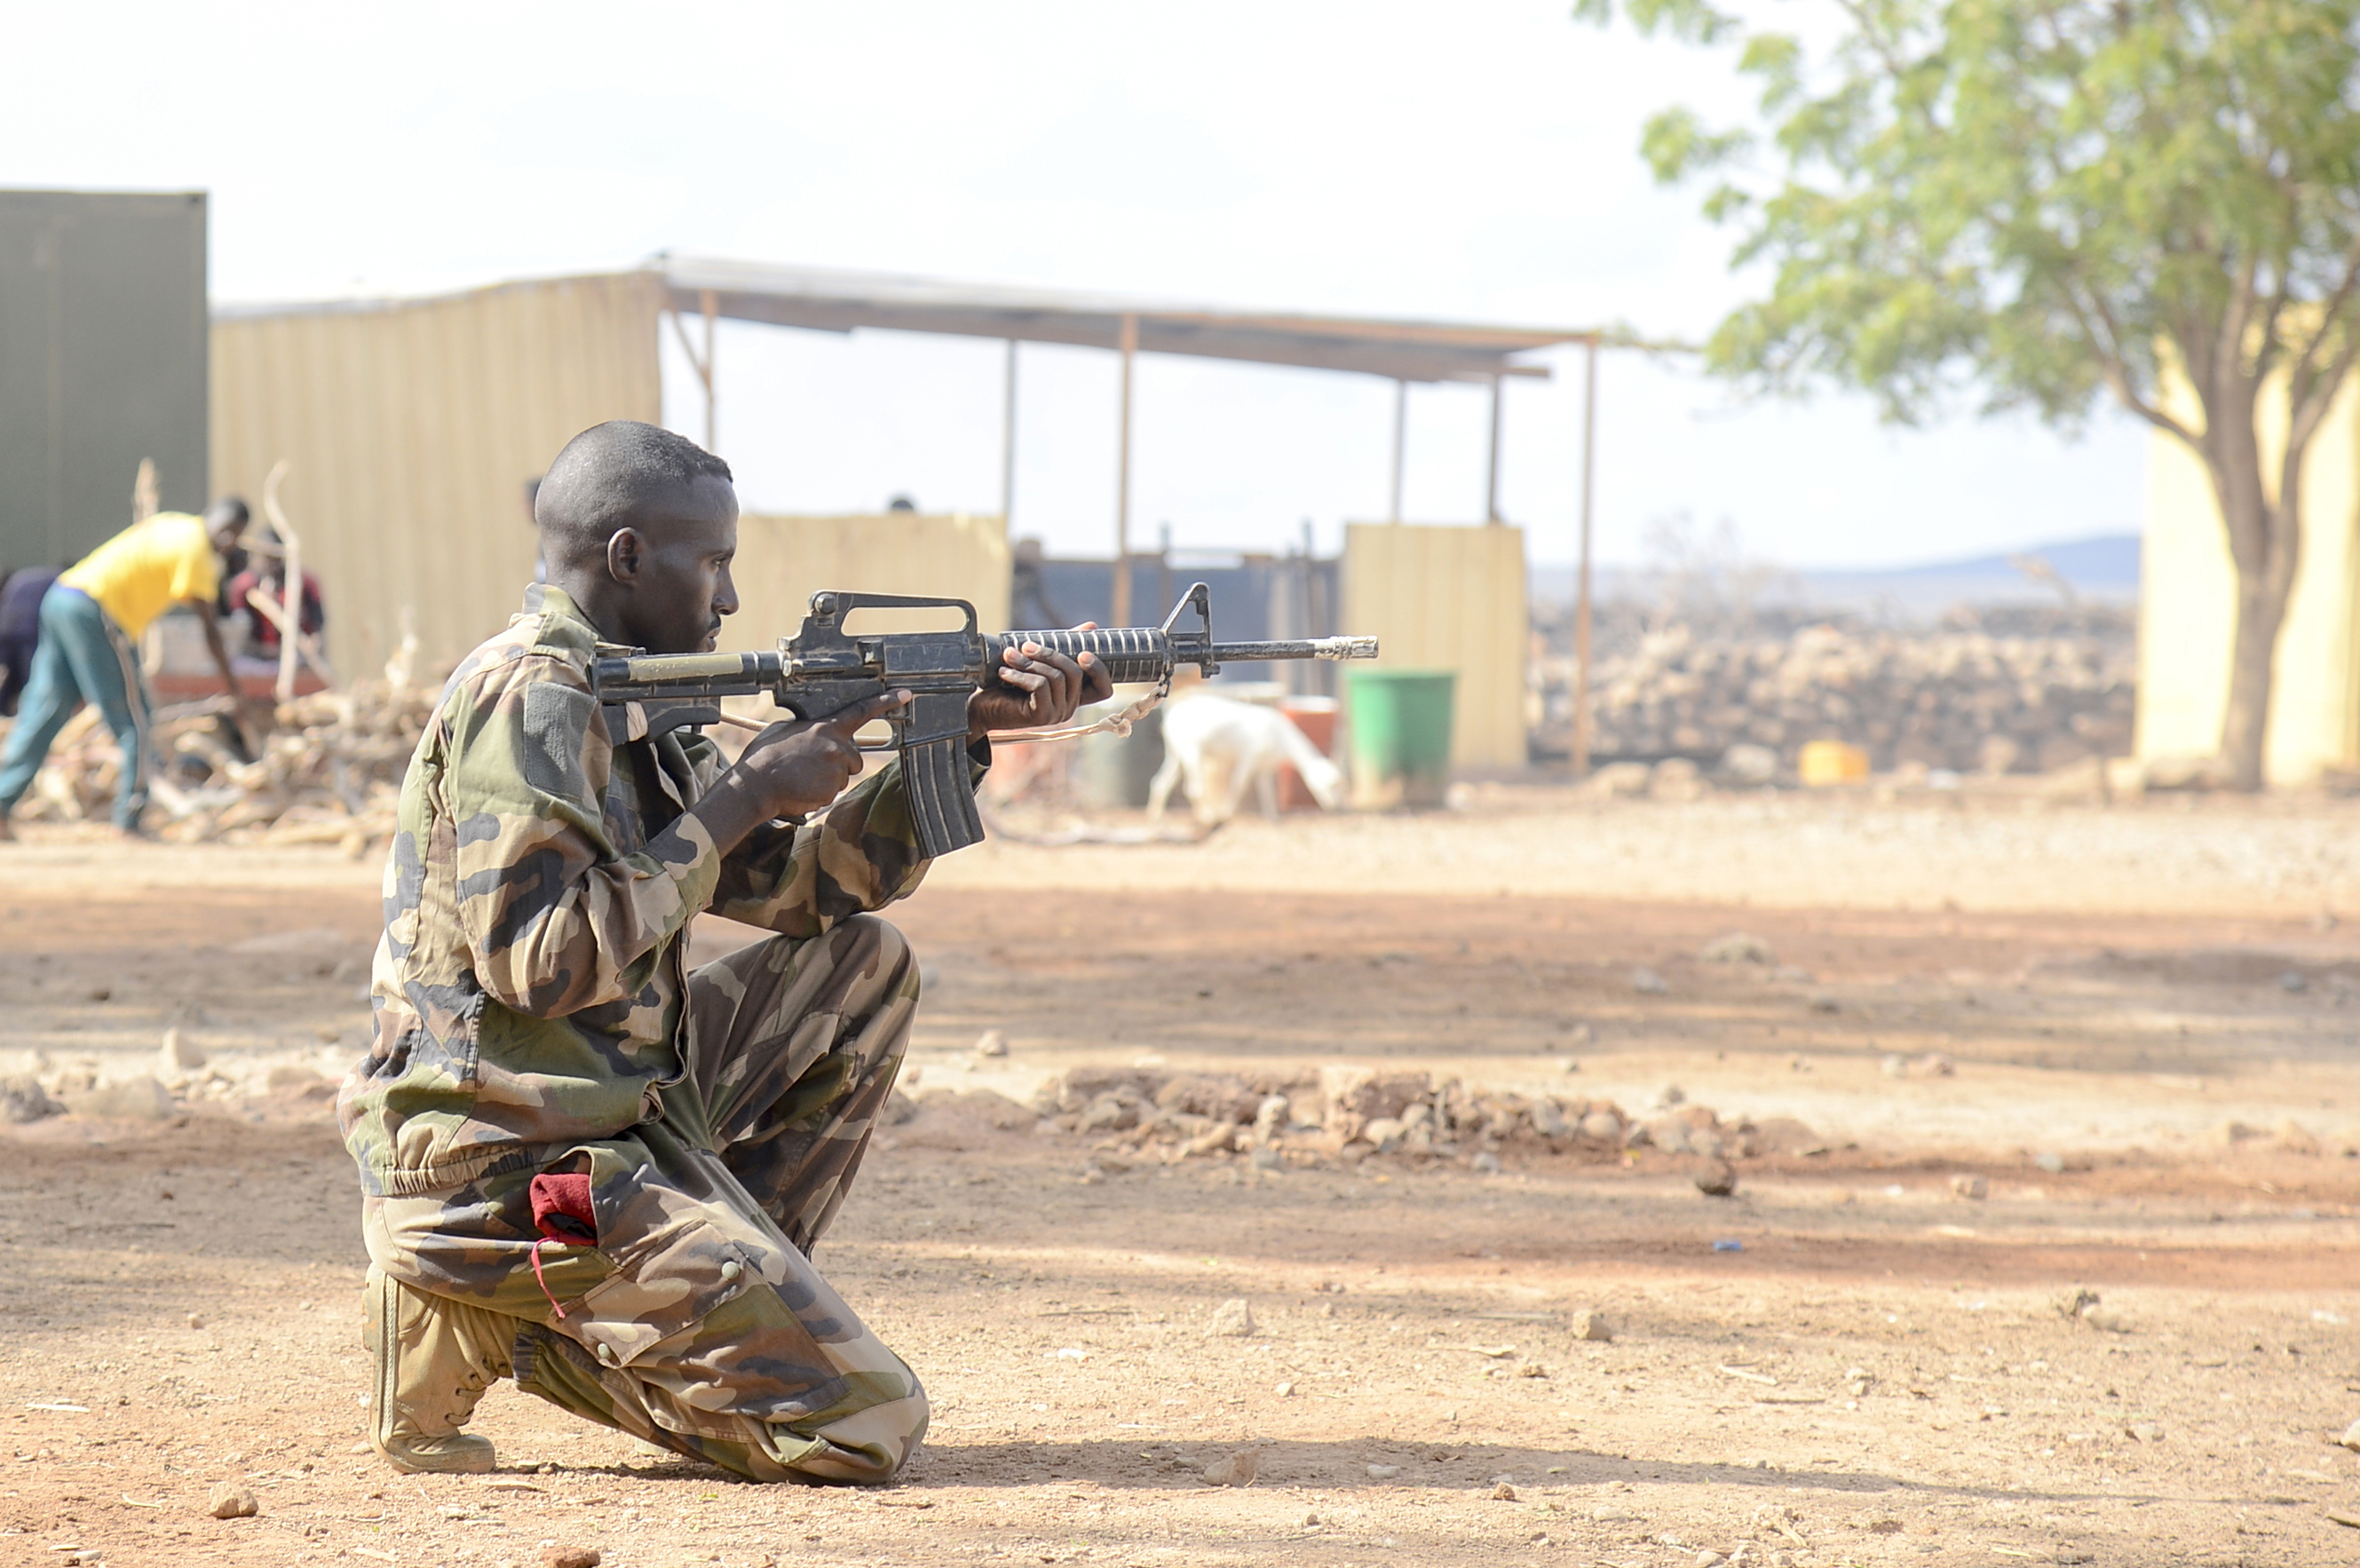 A Djiboutian soldier provides security during the culminating exercise of a five-week training cycle for the newly formed Rapid Intervention Battalion (RIB), a newly formed Djiboutian army crisis response unit, at a site outside Djibouti City, May 3, 2018.  U.S. Army Soldiers from Alpha Company, 3rd Battalion, 141st Infantry Regiment, Texas National Guard, assigned to Combined Joint Task Force- Horn of Africa conducted the RIB training. (U.S. Navy Photo by Mass Communication Specialist 2nd Class Timothy M. Ahearn)